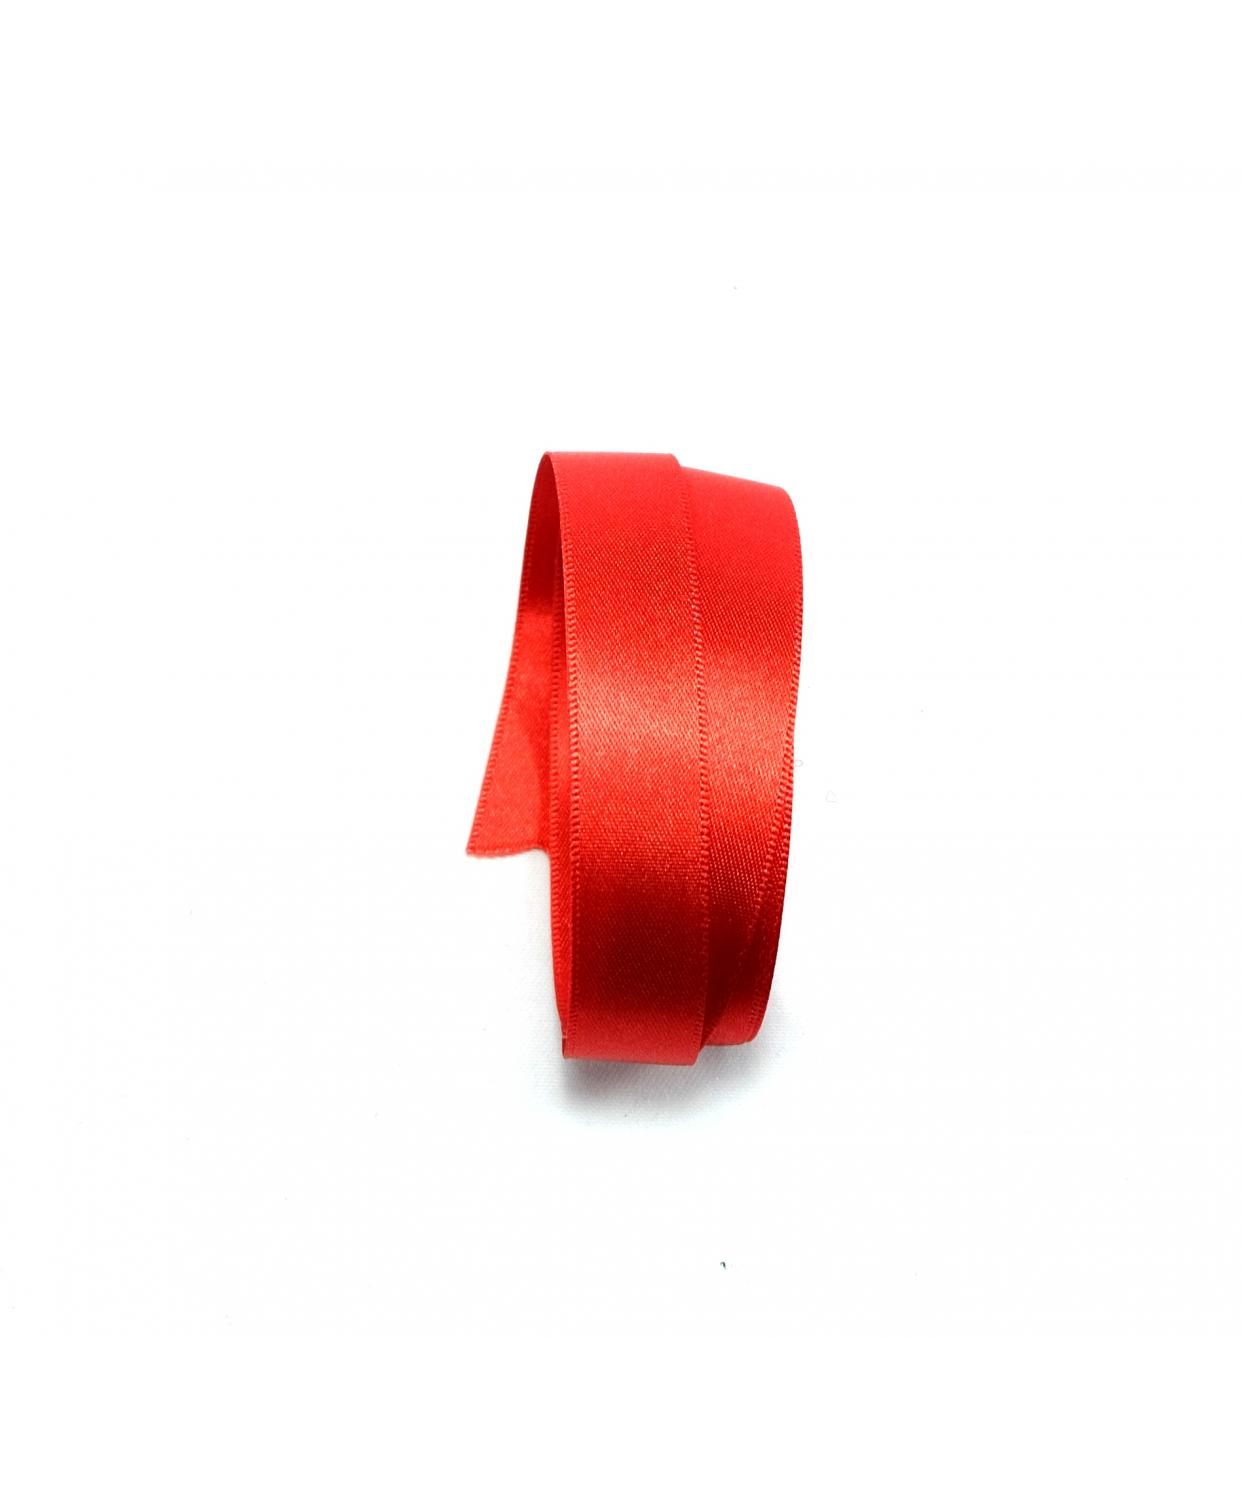 Ribbon Length